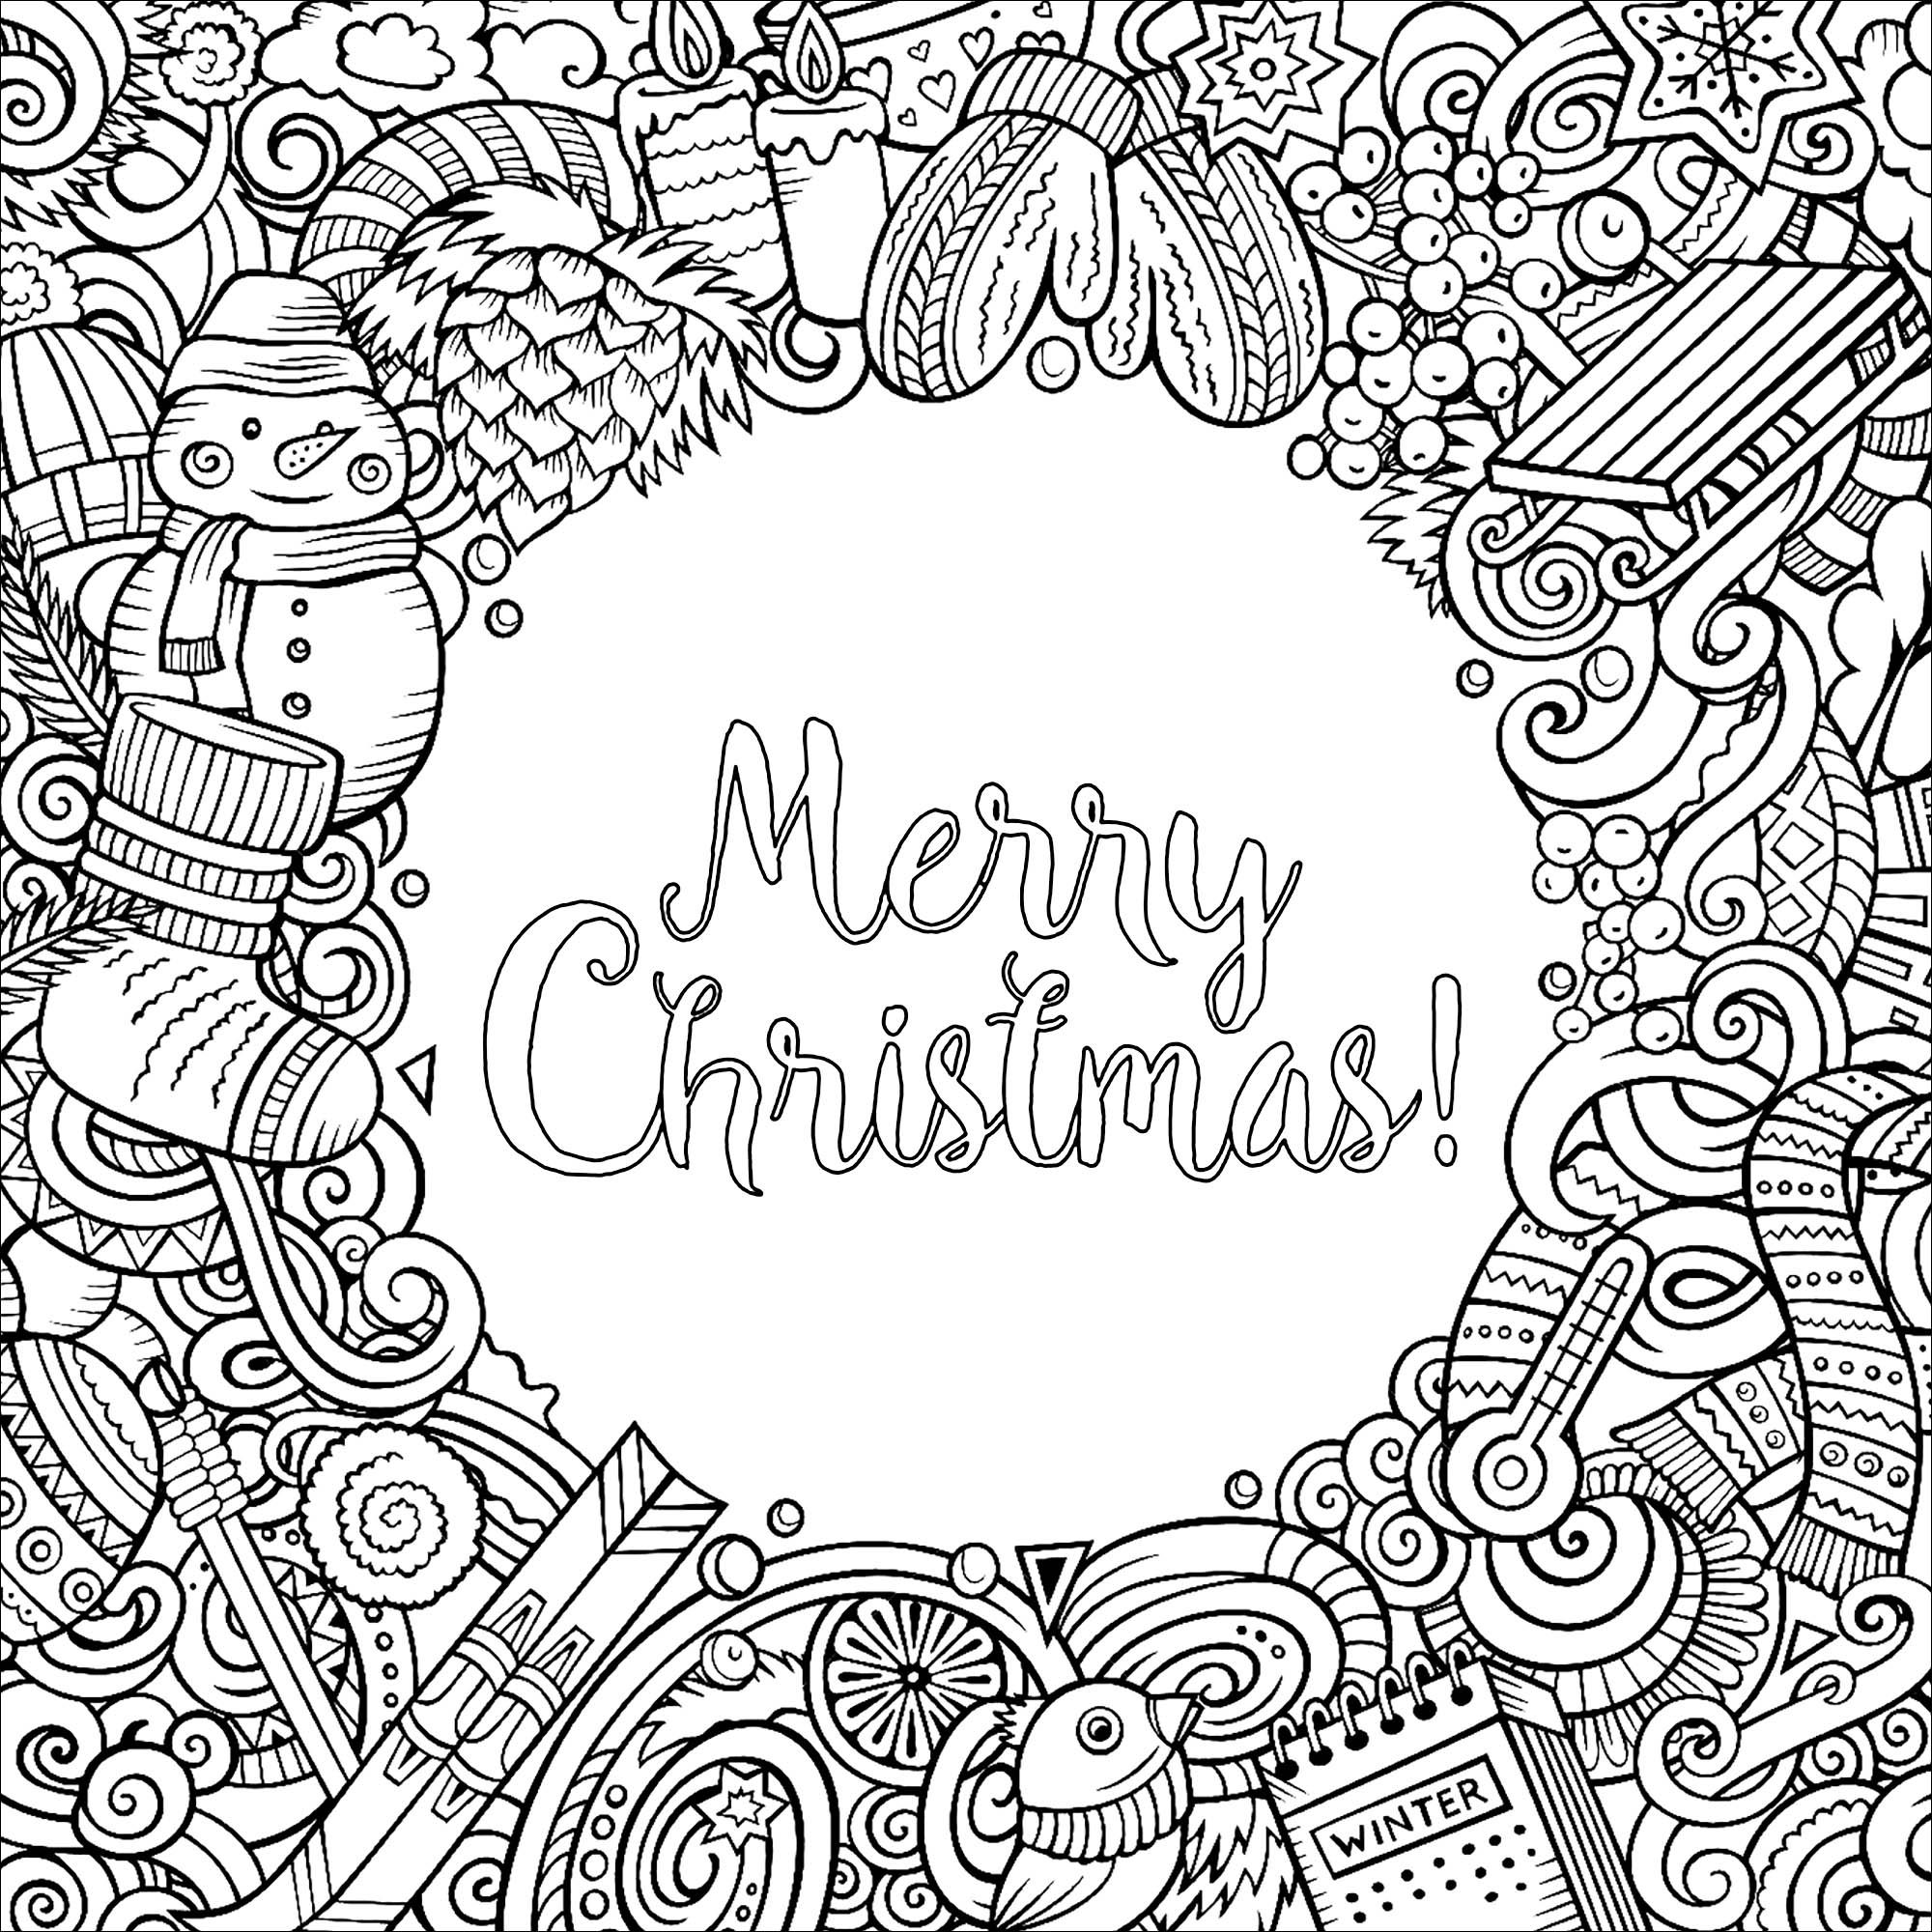 Coloring Rocks Merry Christmas Coloring Pages Printable Christmas Coloring Pages Santa Coloring Pages